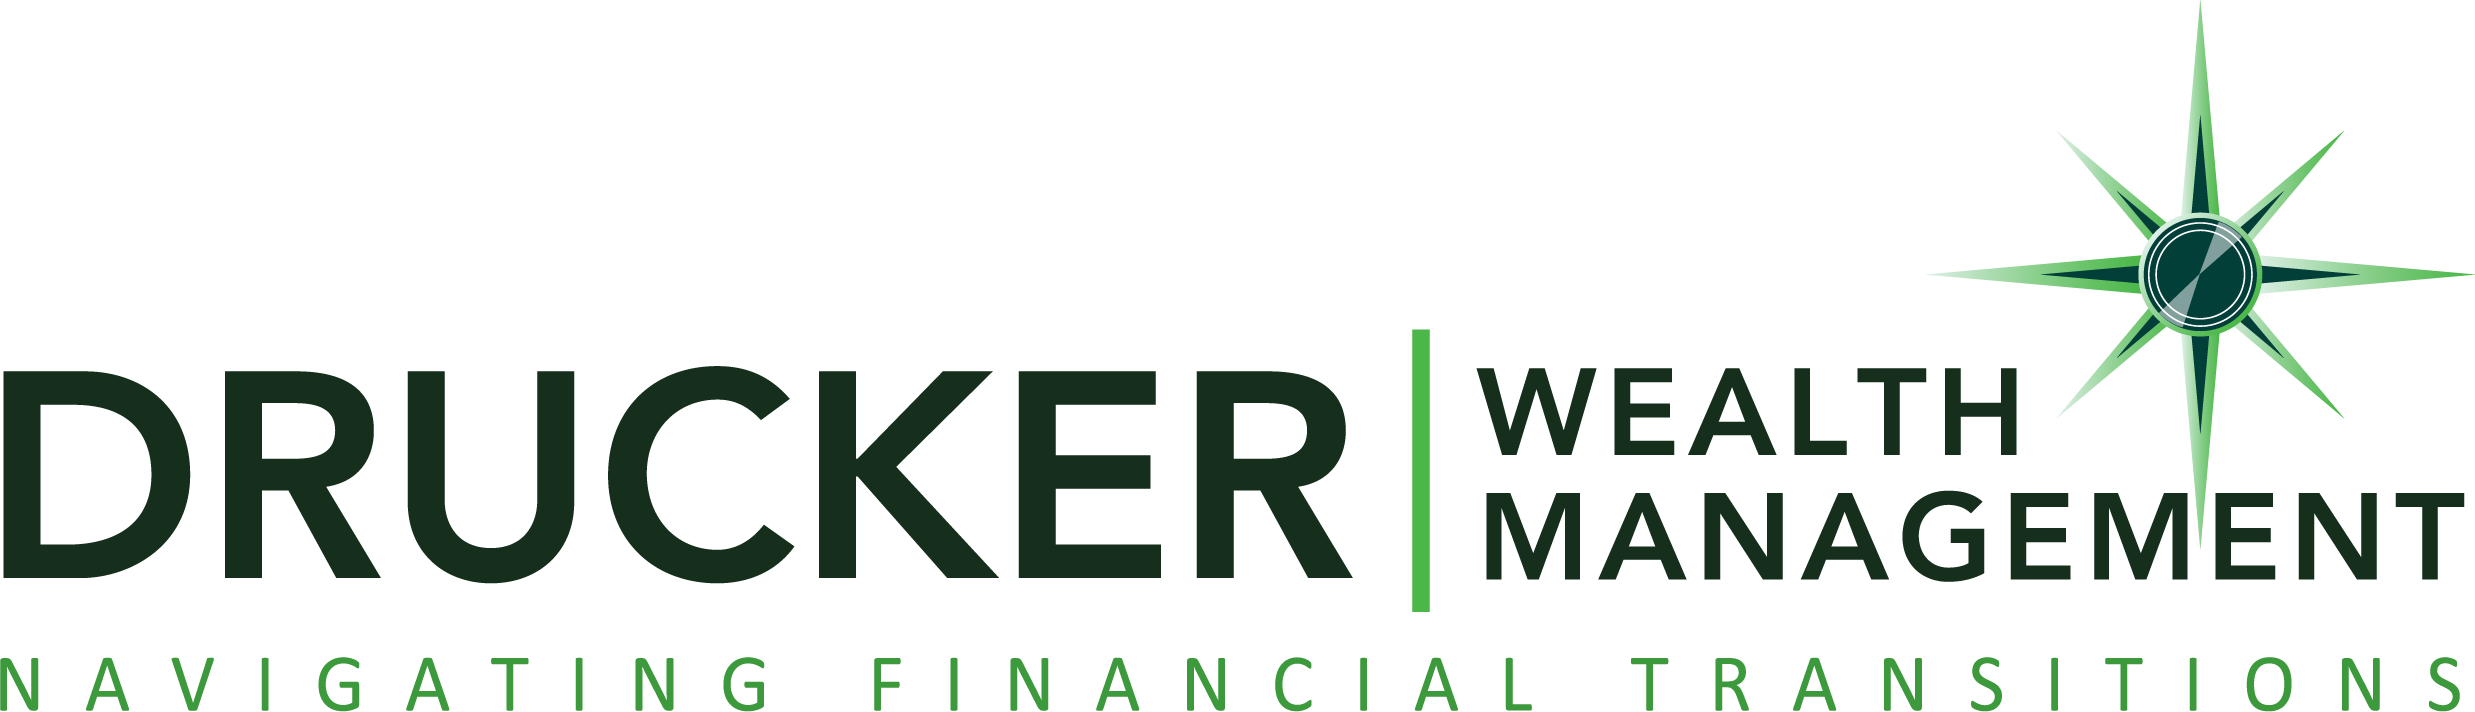 Drucker Wealth Management